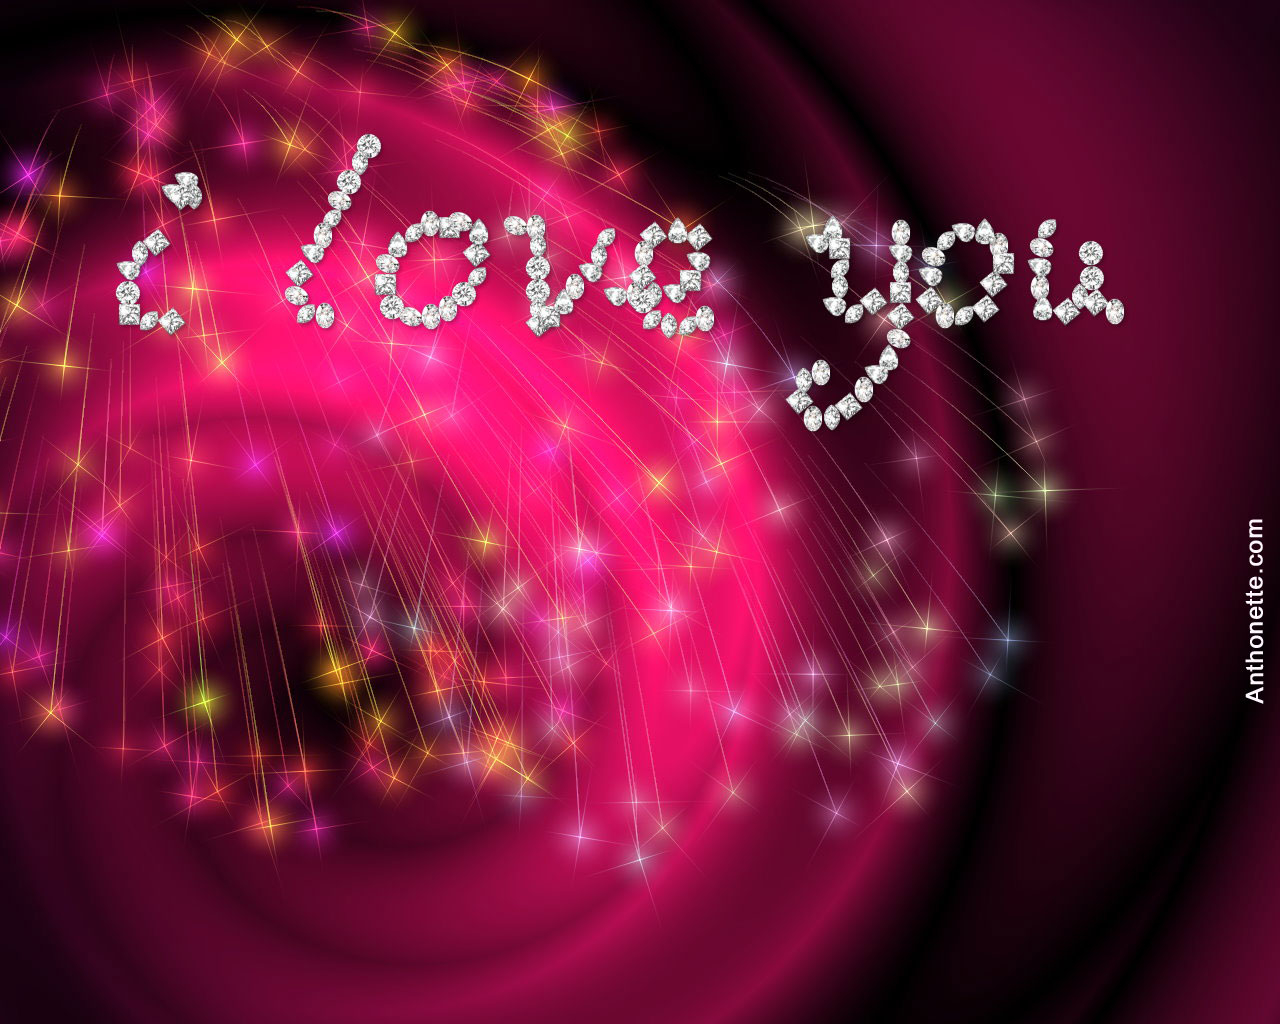 Free Download Love Collection Cute Love Wallpapers 02 1280x1024